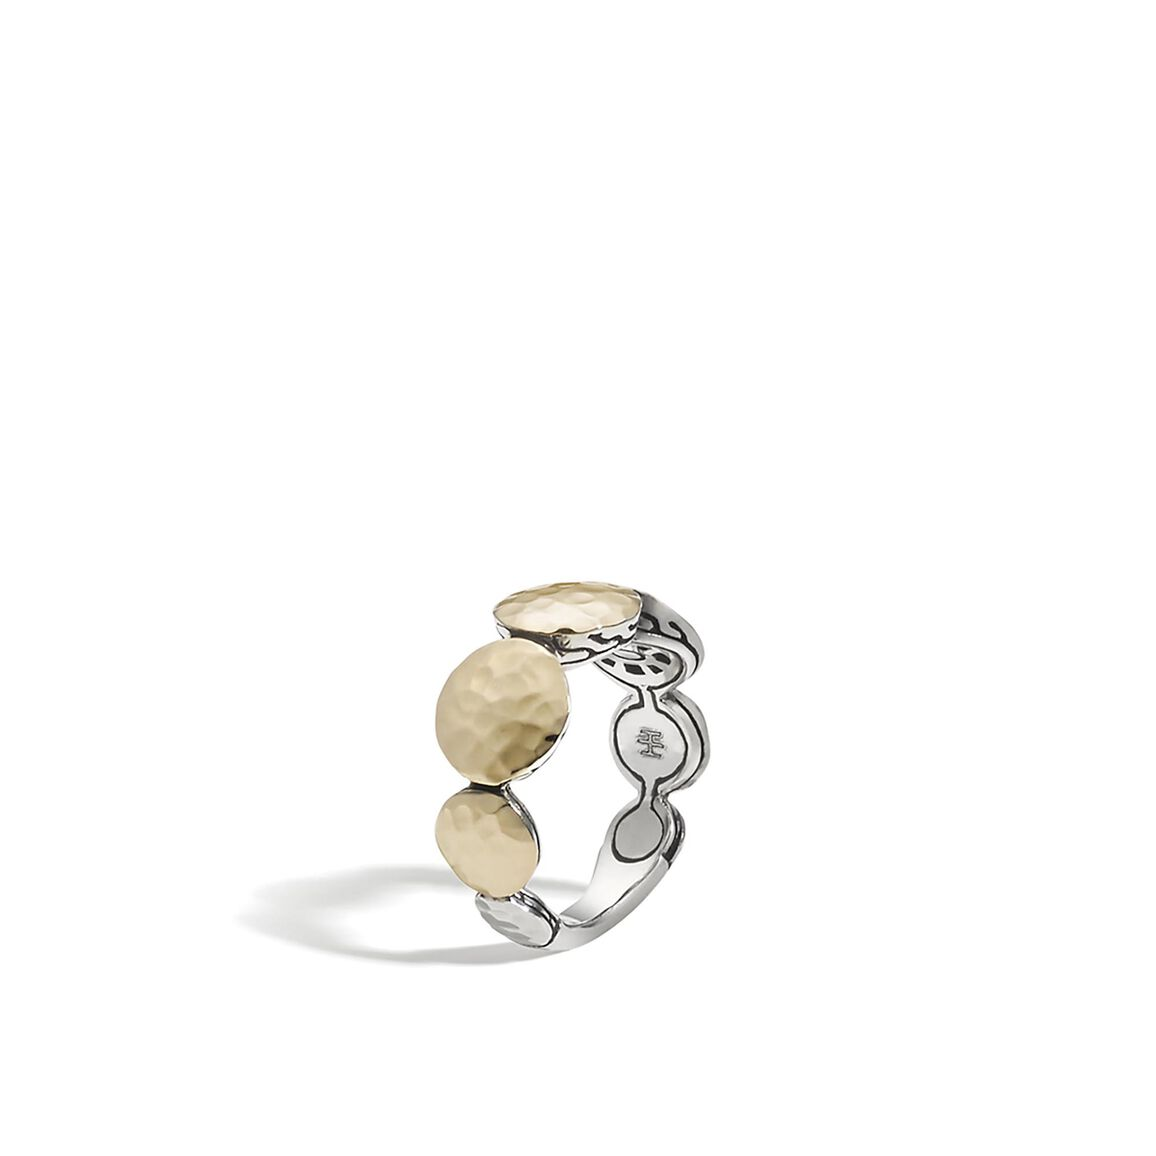 Dot 9MM Band Ring in Silver and Hammered 18K Gold